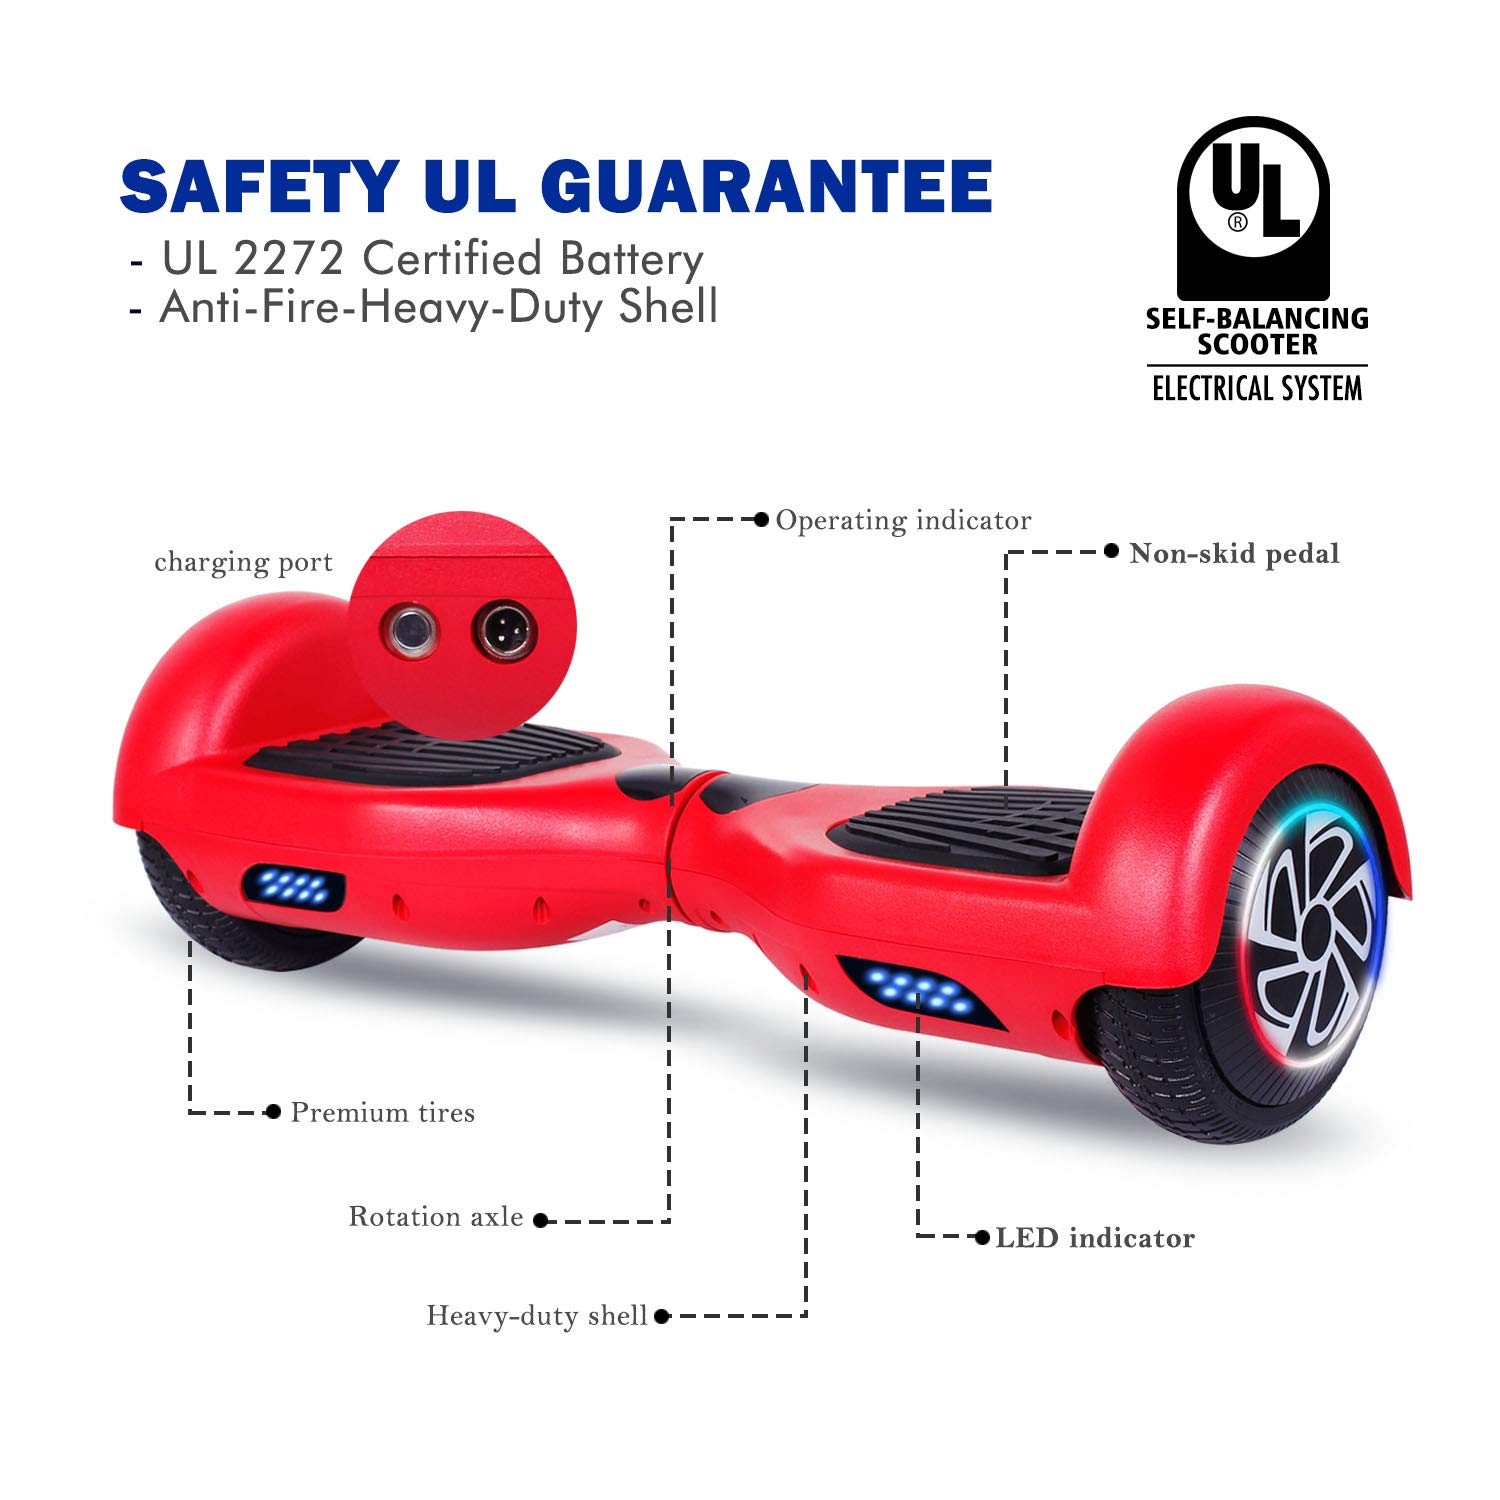 SISIGAD Hoverboard Self Balancing Scooter 6.5'' Two-Wheel Self Balancing Hoverboard with LED Lights Electric Scooter for Adult Kids Gift UL 2272 Certified - Red by SISIGAD (Image #2)